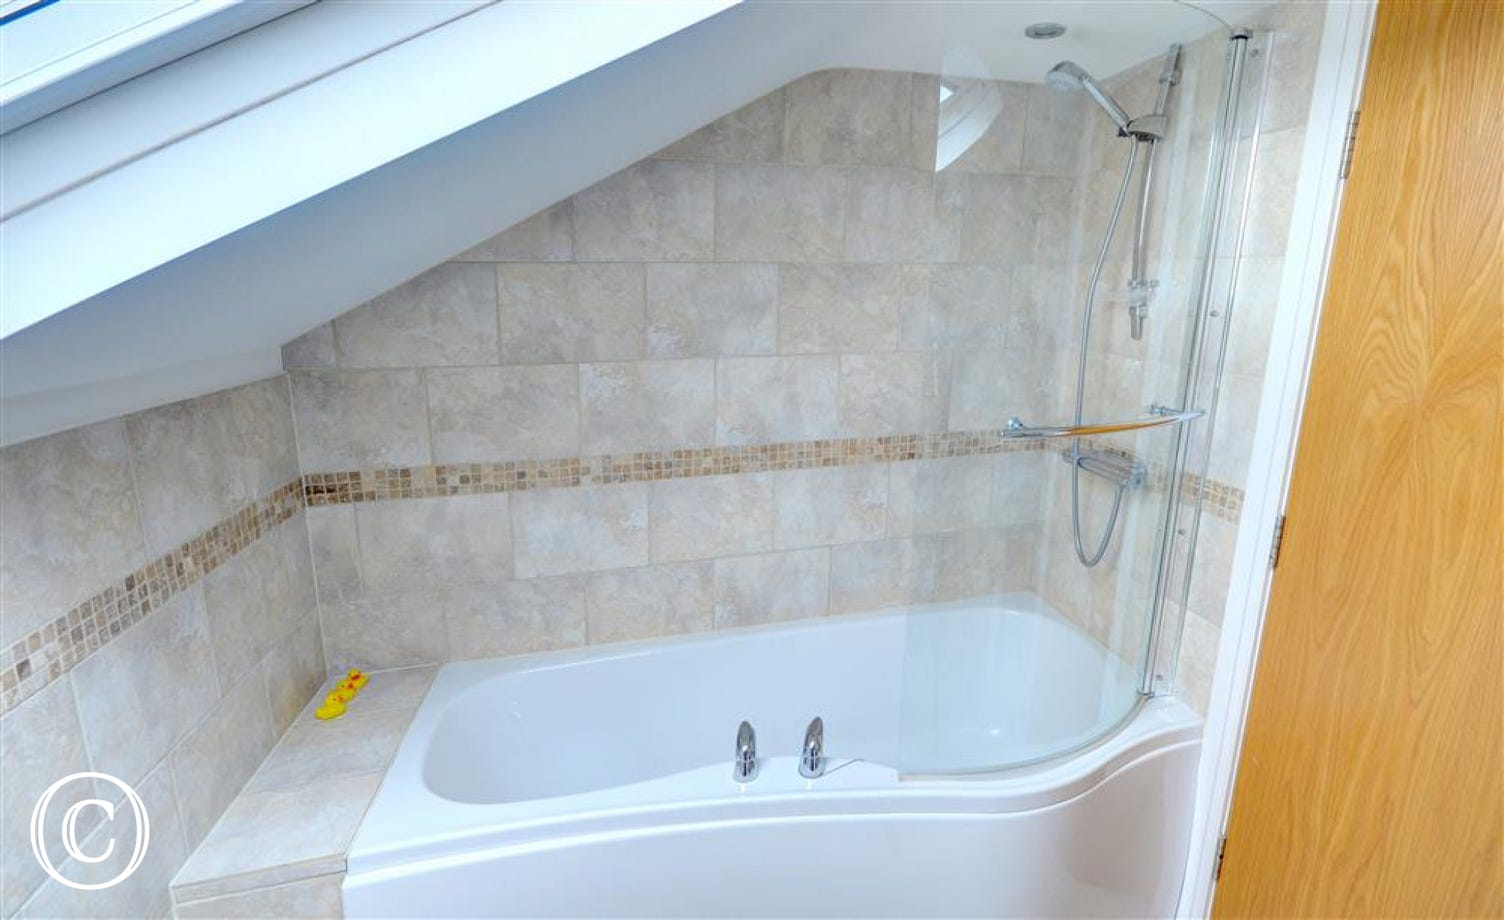 The Velux window in the Bathroom allows plenty of light in.